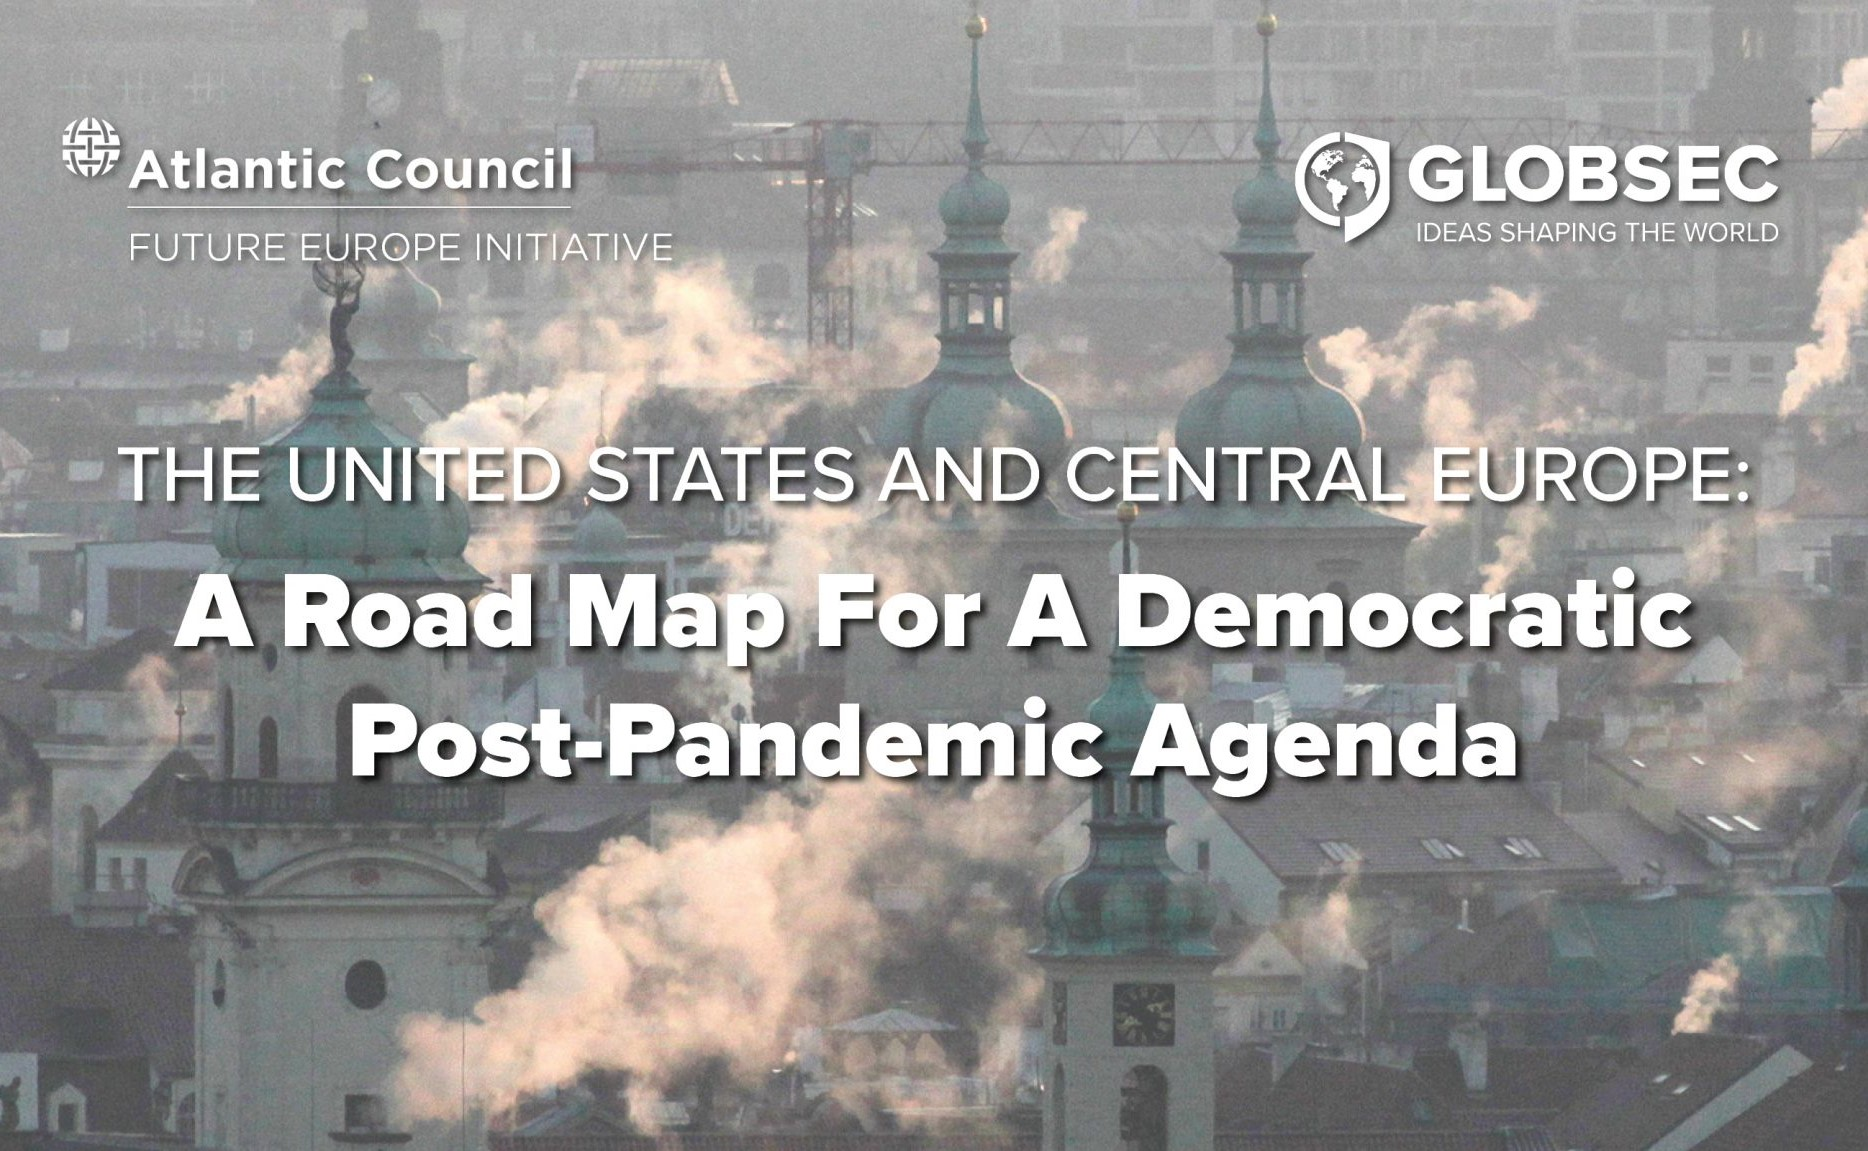 The United States and Central Europe: A Road Map for a Democratic Post-pandemic Agenda